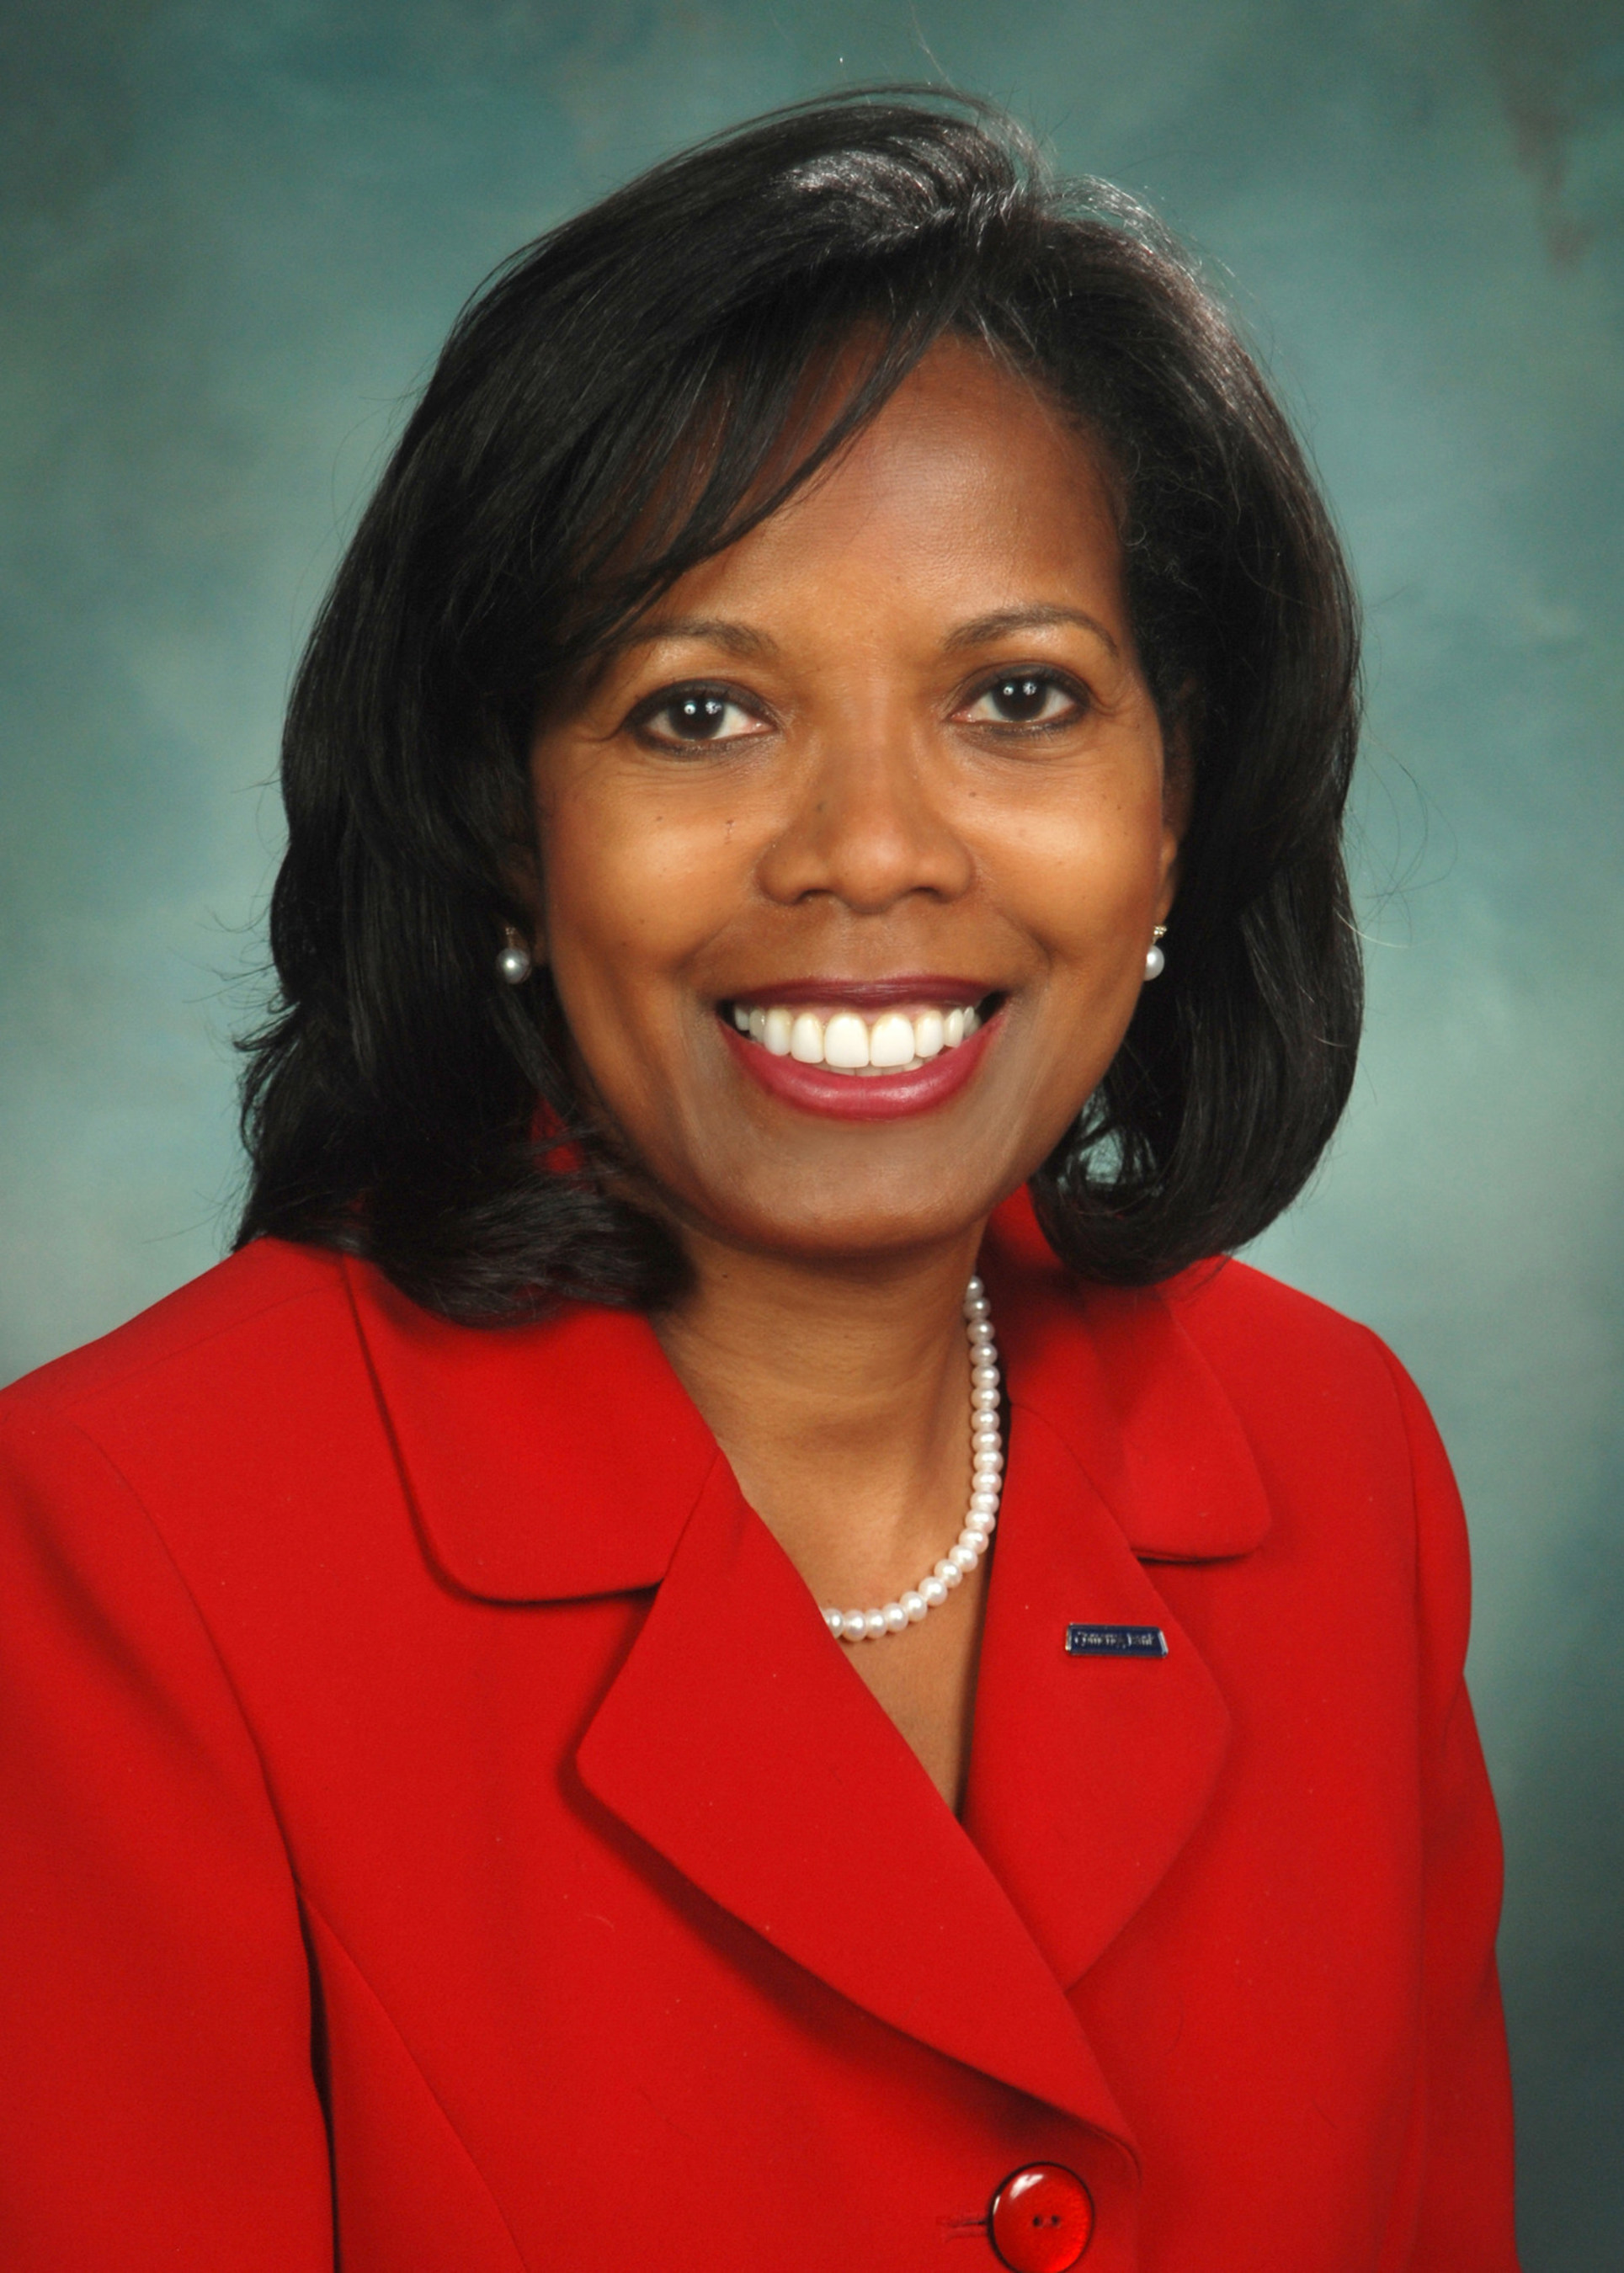 Rhonda Davenport Johnson, a 27-year Comerica veteran, has been named National Director of Retail Sales and Service, effective immediately. (PRNewsFoto/Comerica Bank)